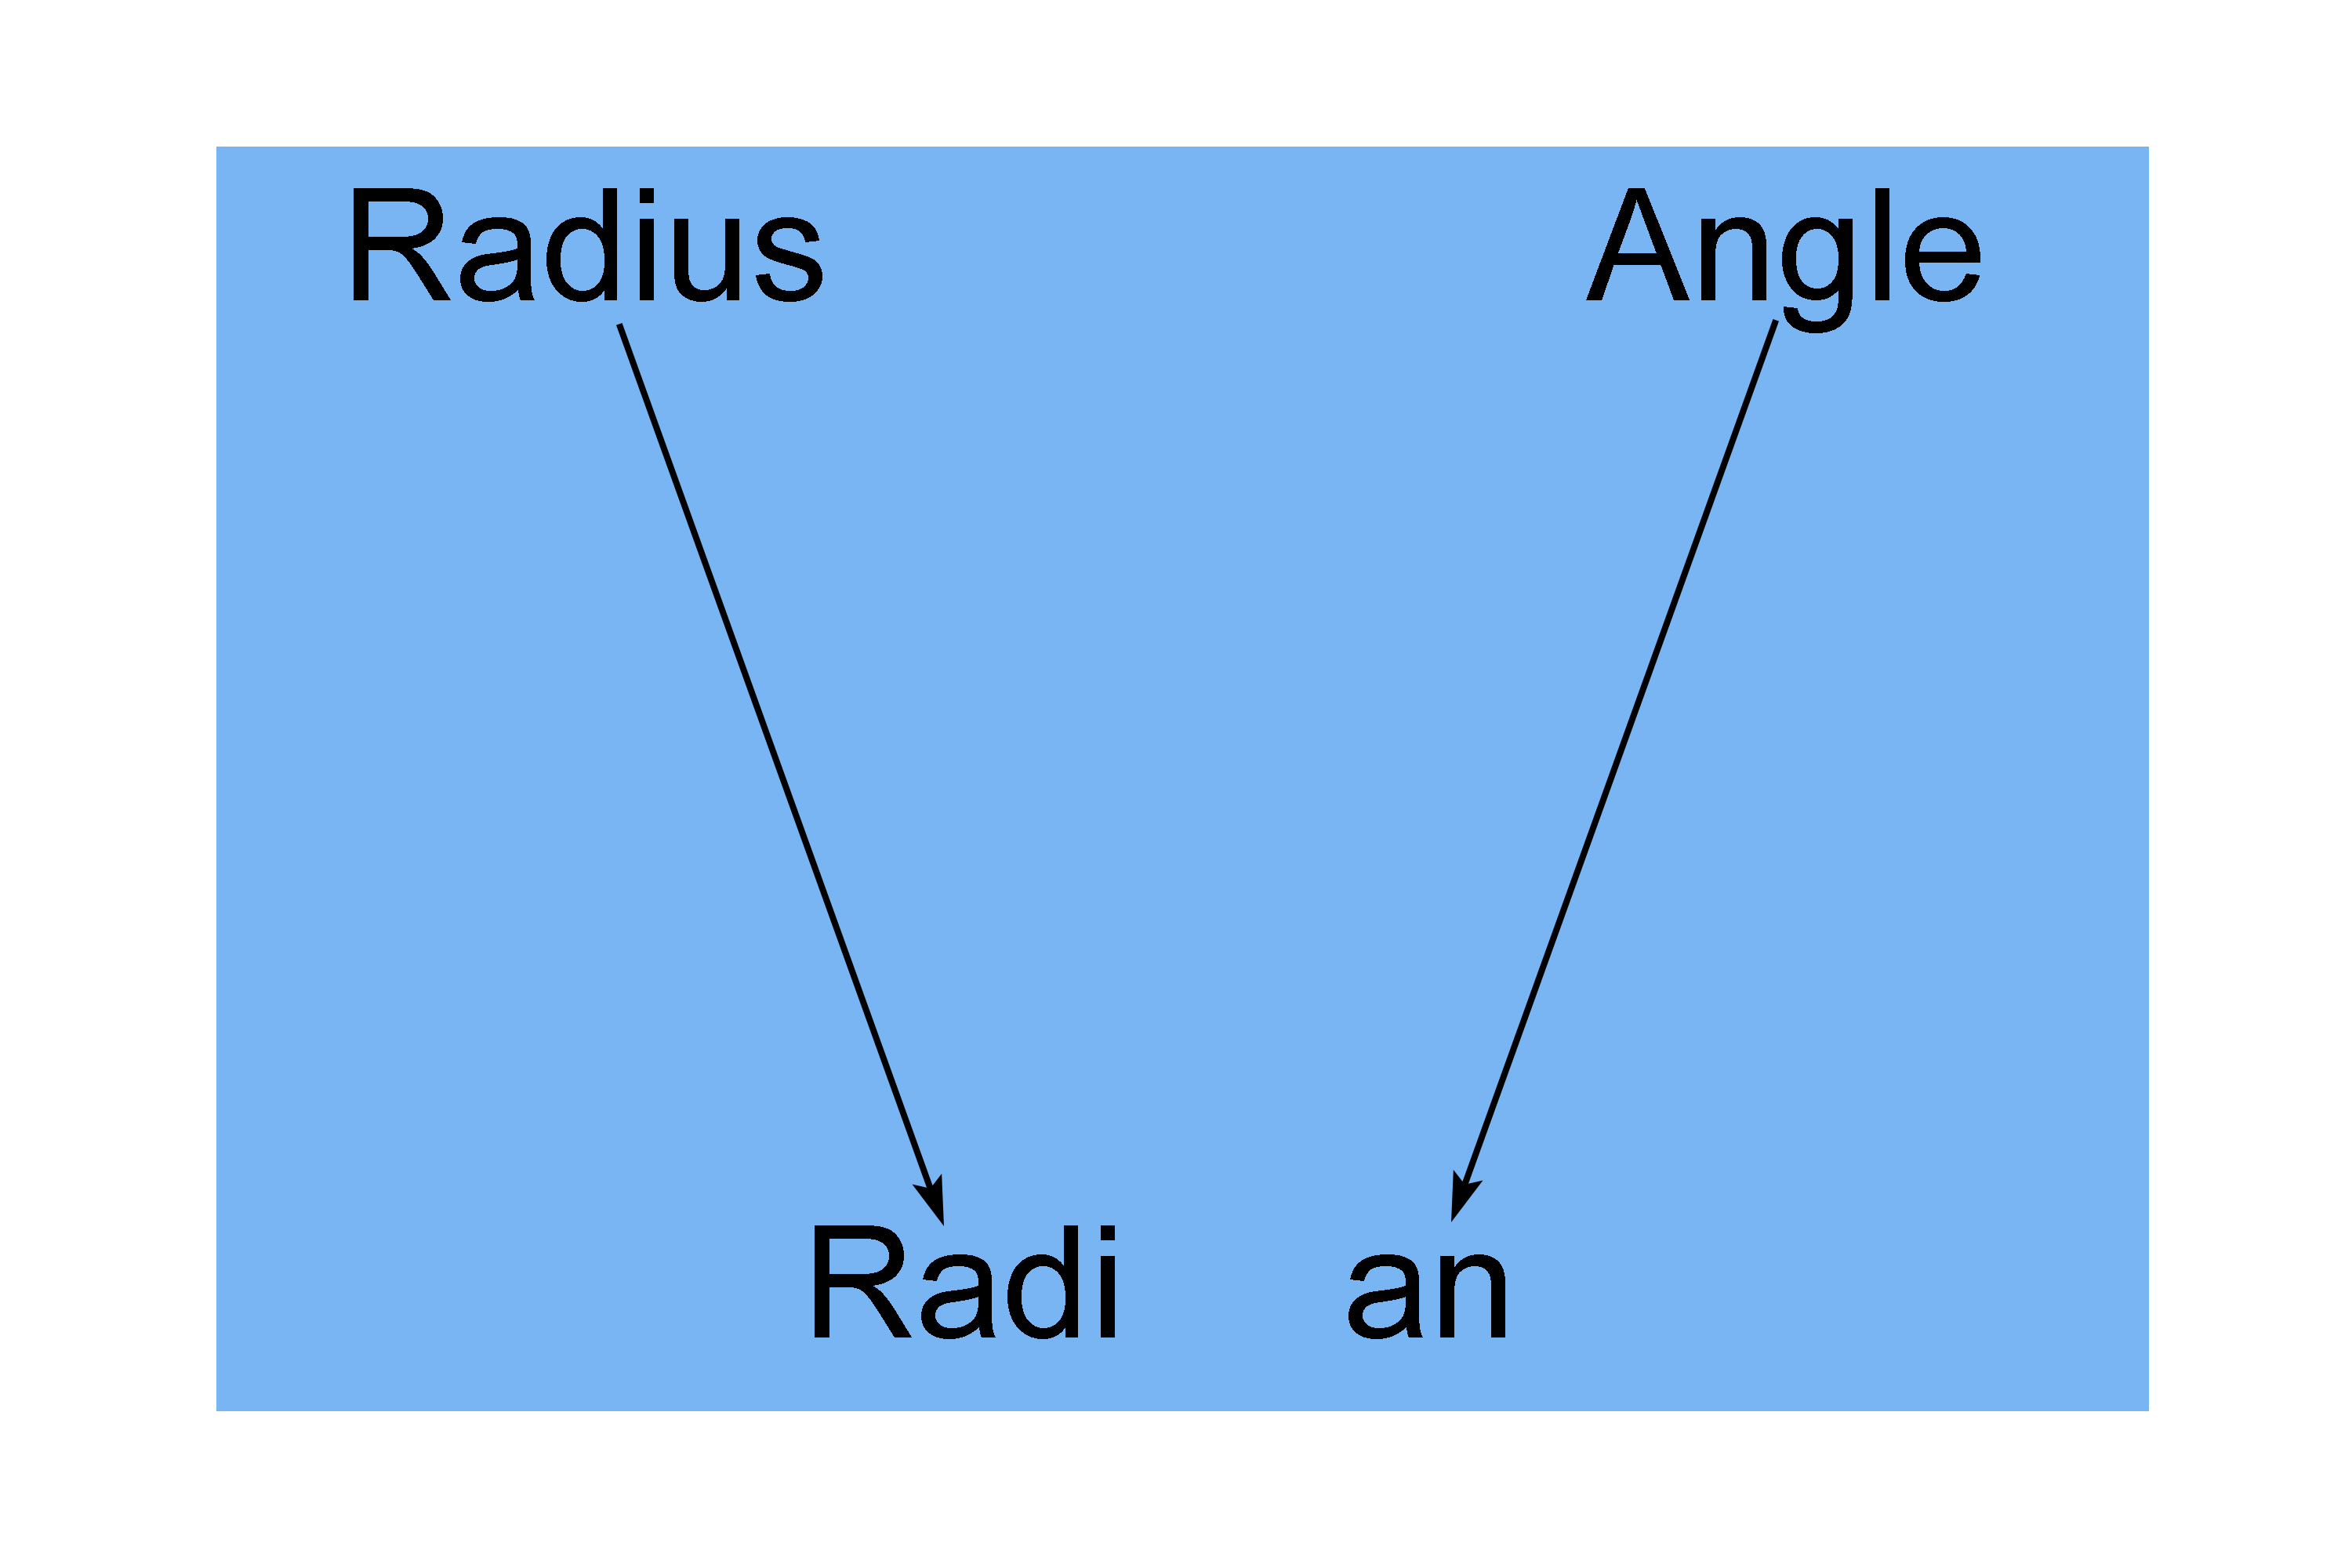 Radian is the angle made when the radius is wrapped around a circle